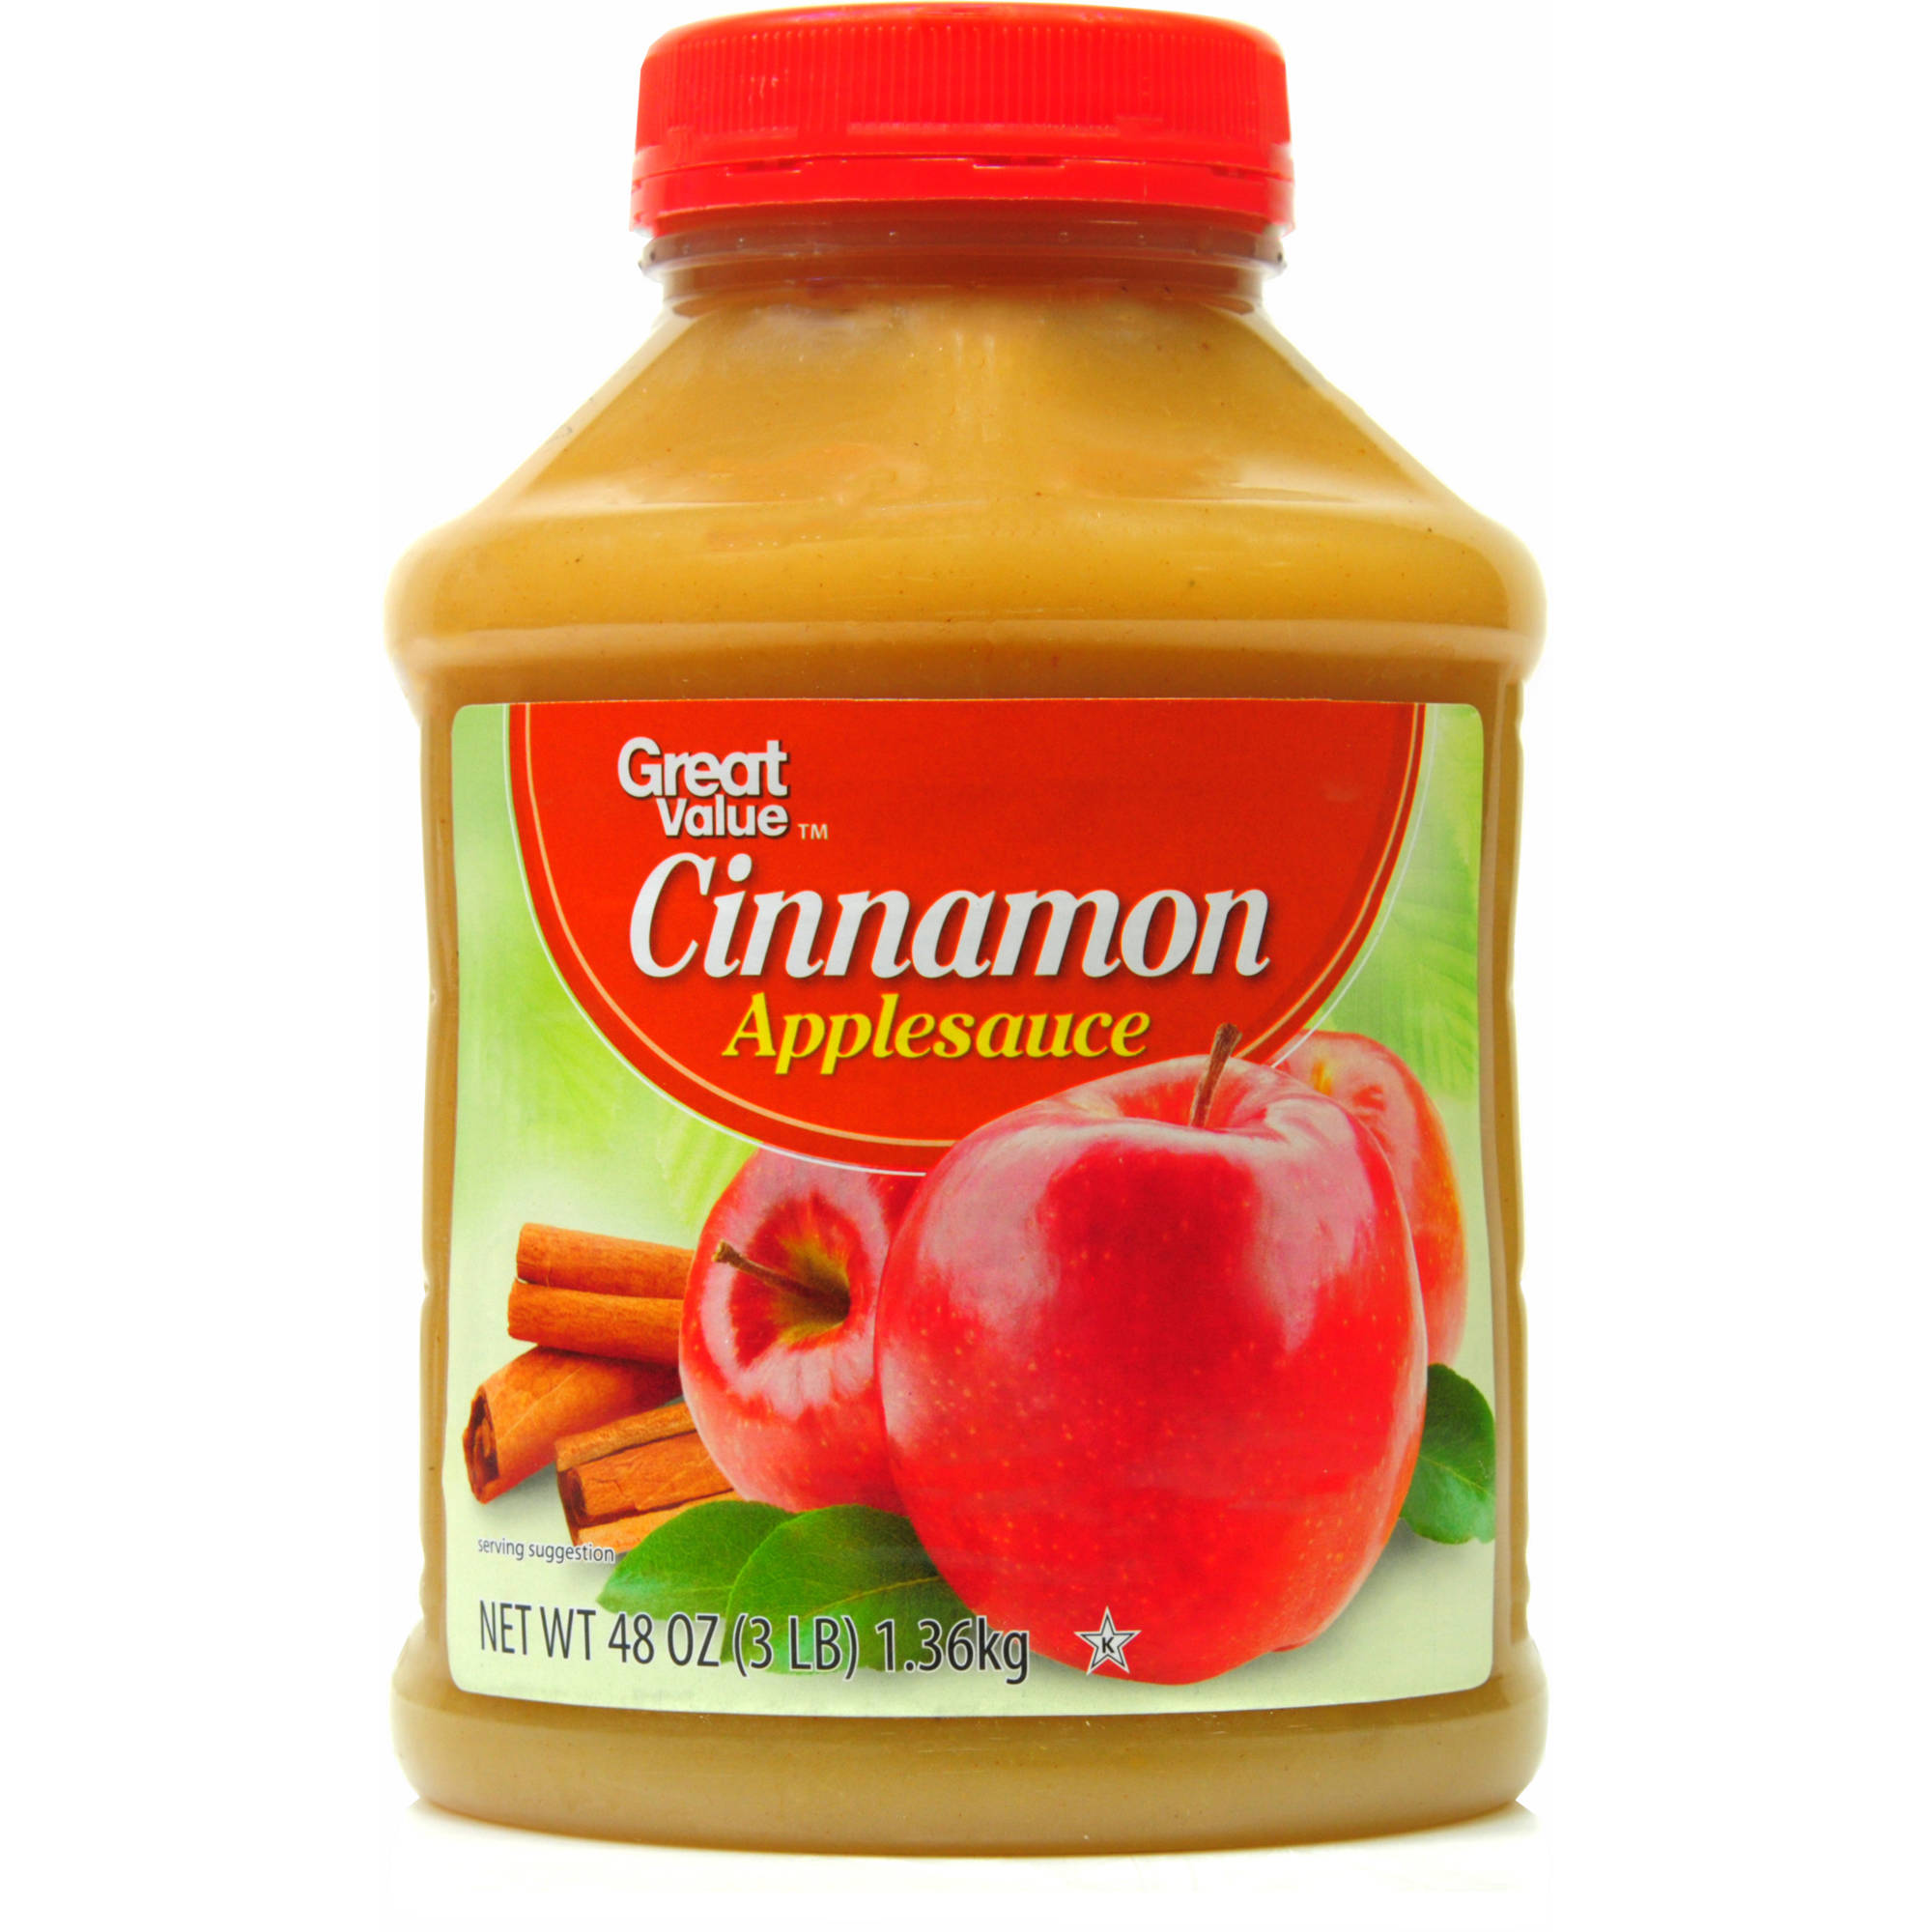 Great Value Cinnamon Applesauce, 48 oz